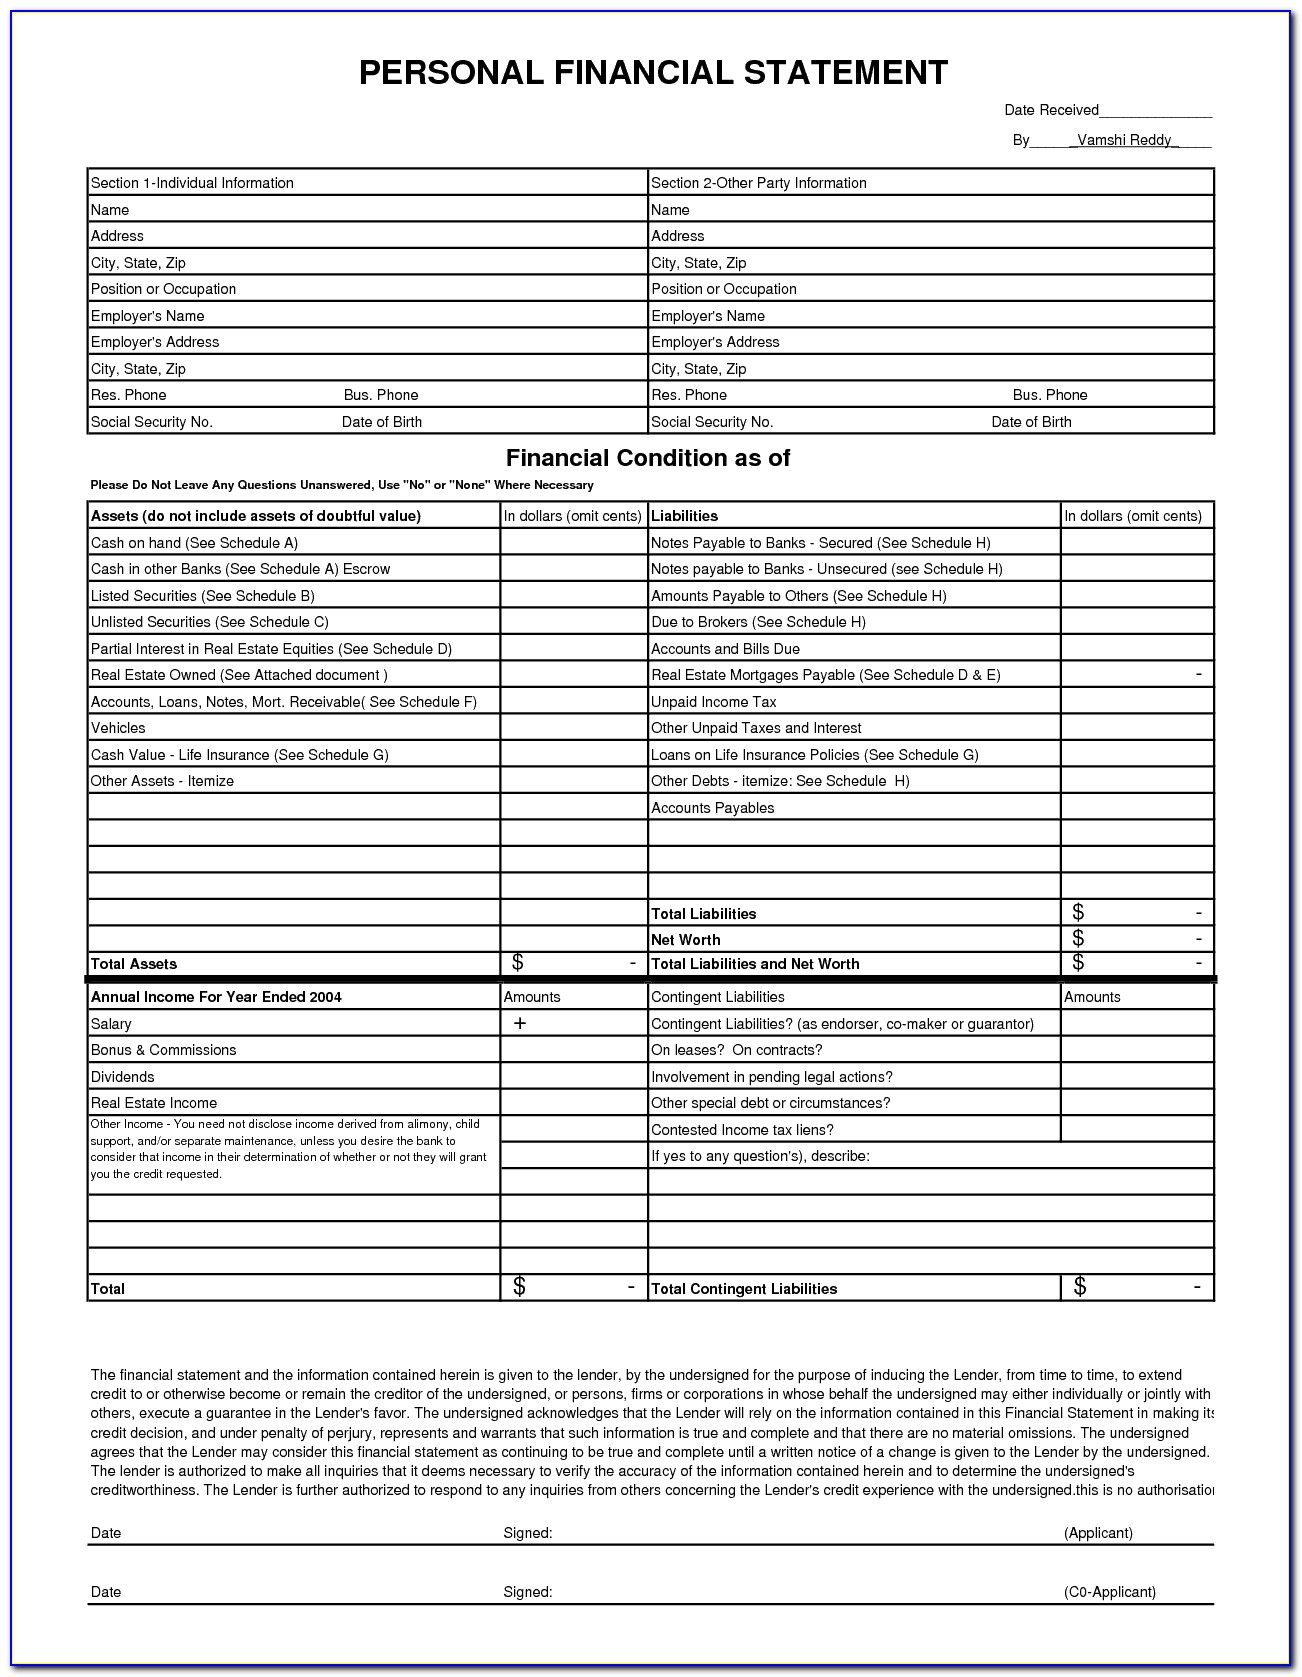 Sba Personal Financial Statement Excel Template